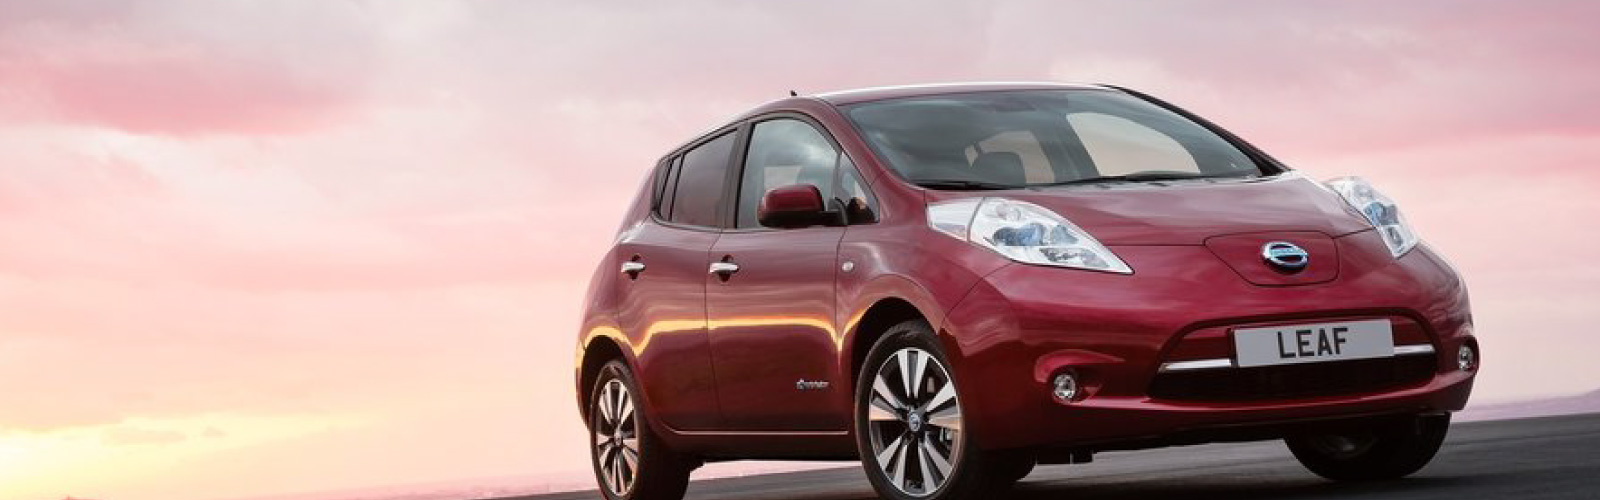 nissan-leaf-bodyshop